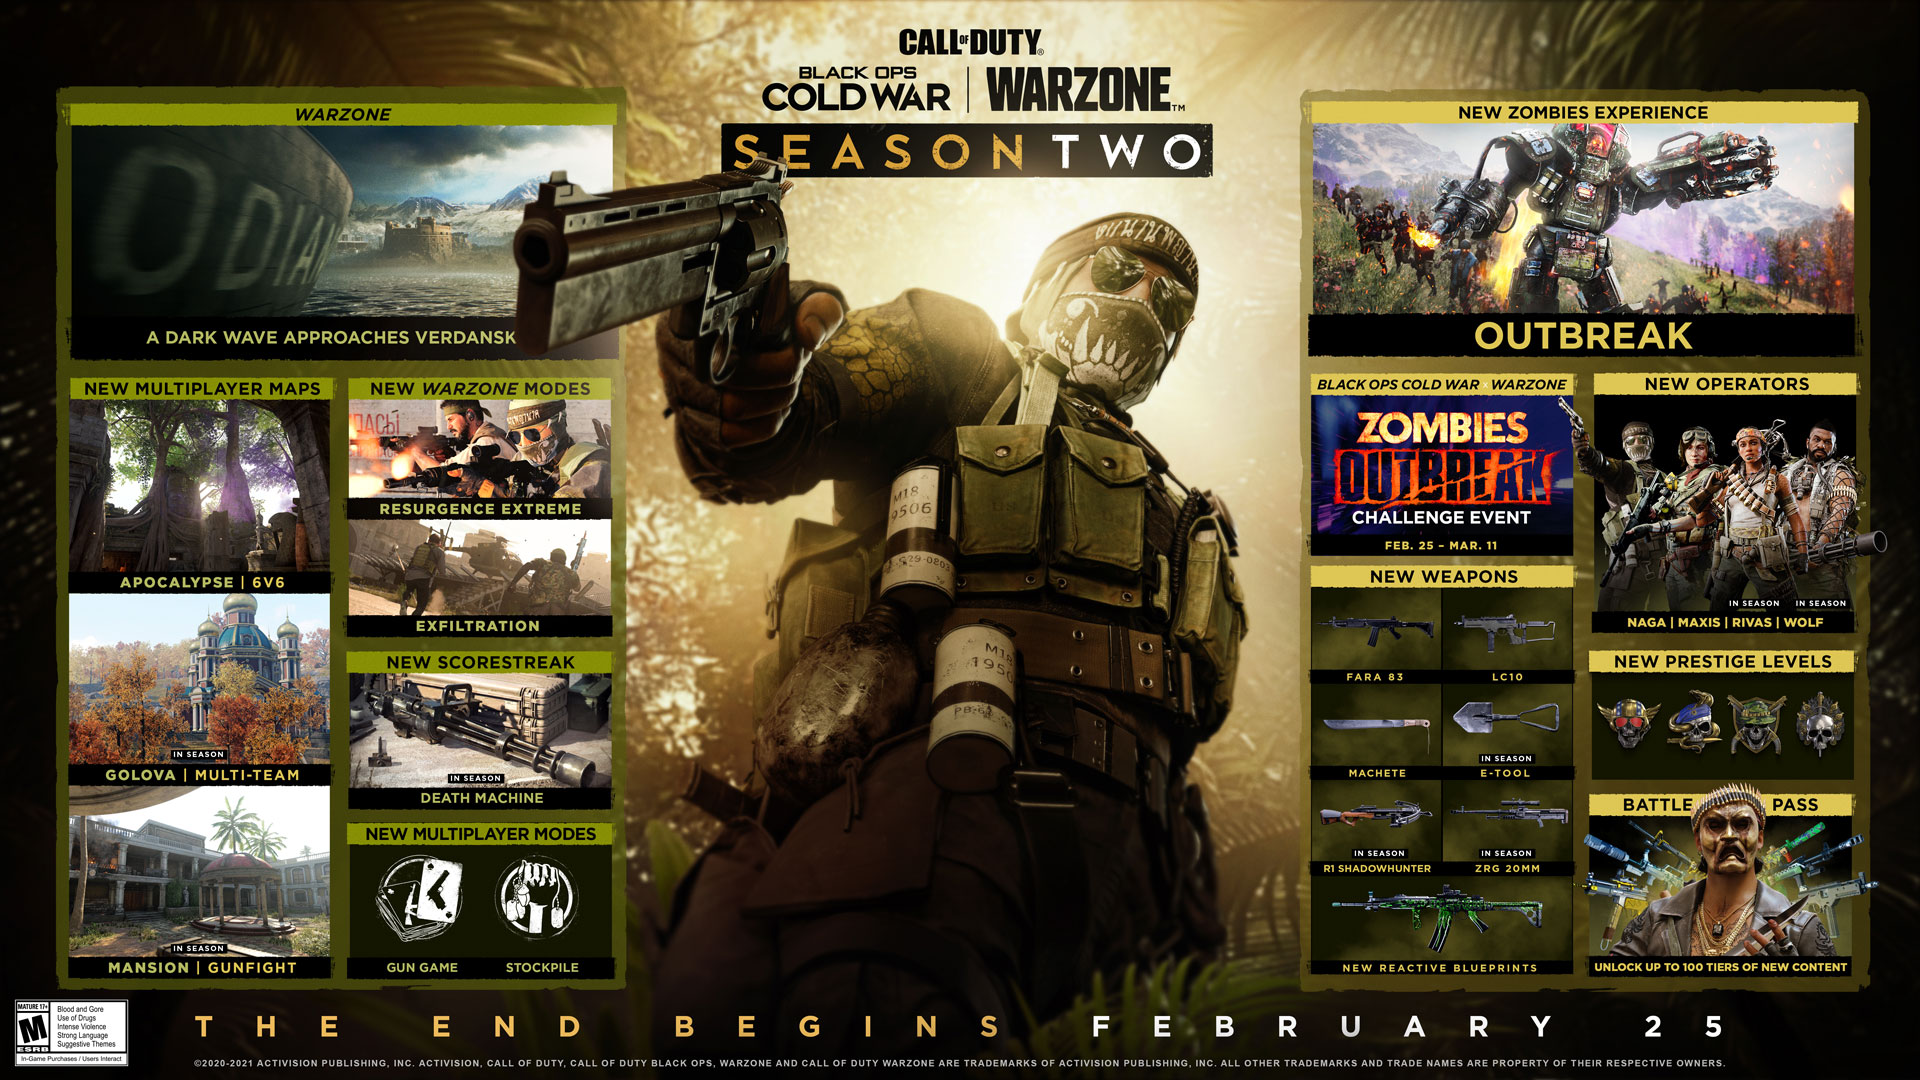 Call of Duty: Black Ops Cold War & Warzone: This is what you can expect in Season 2 - Roadmap is here